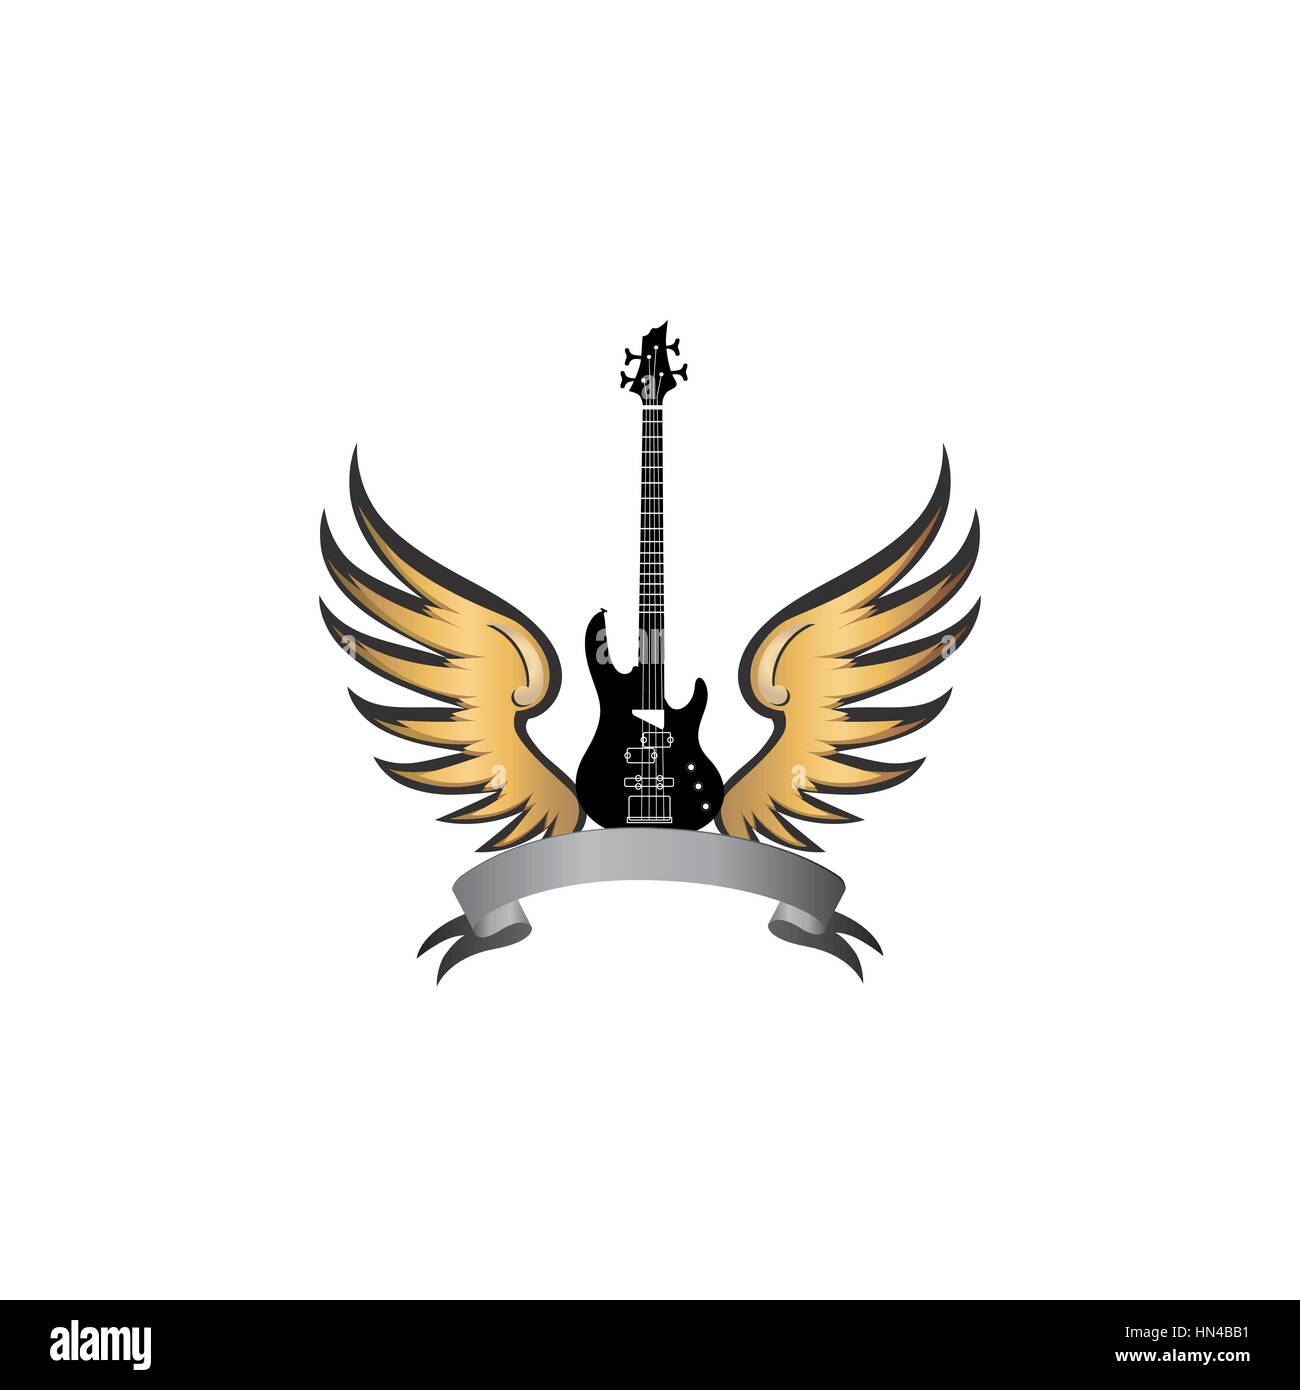 Rock music symbol. Electric guitar with wings. Winged guitar with ribbon for band or festival name. Vintage vector - Stock Image